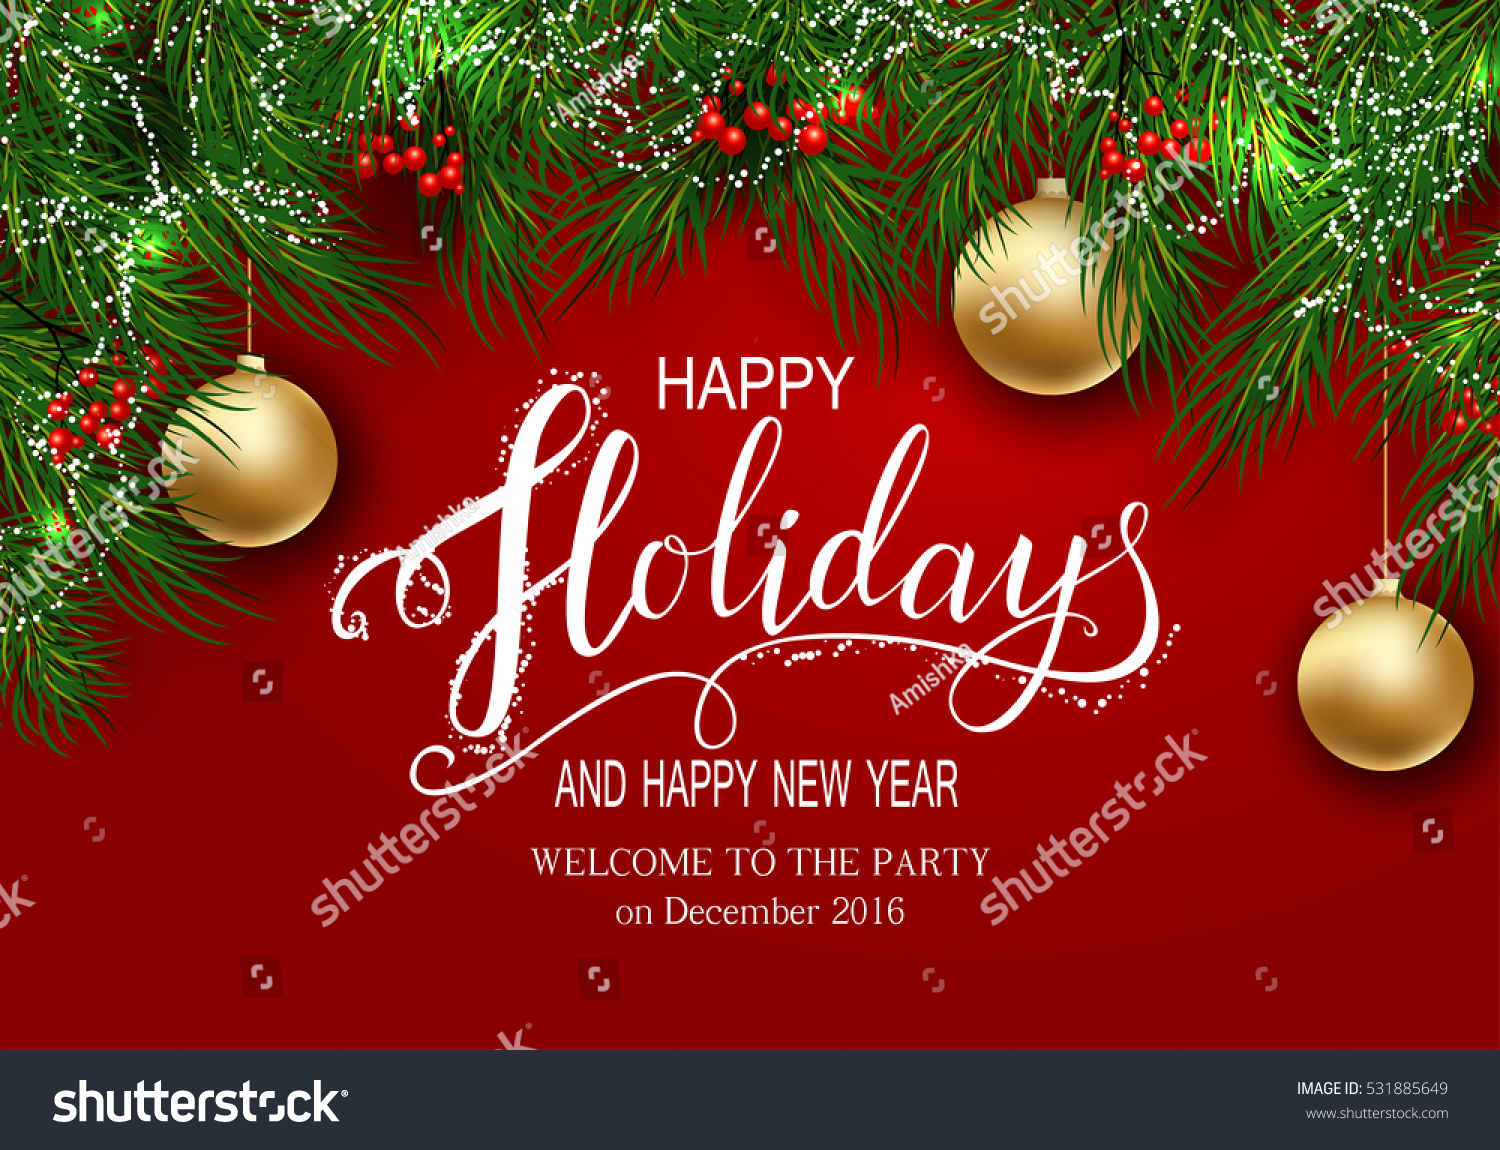 Holidays Greeting Card Winter Happy Holidays Stock Vector (Royalty ...